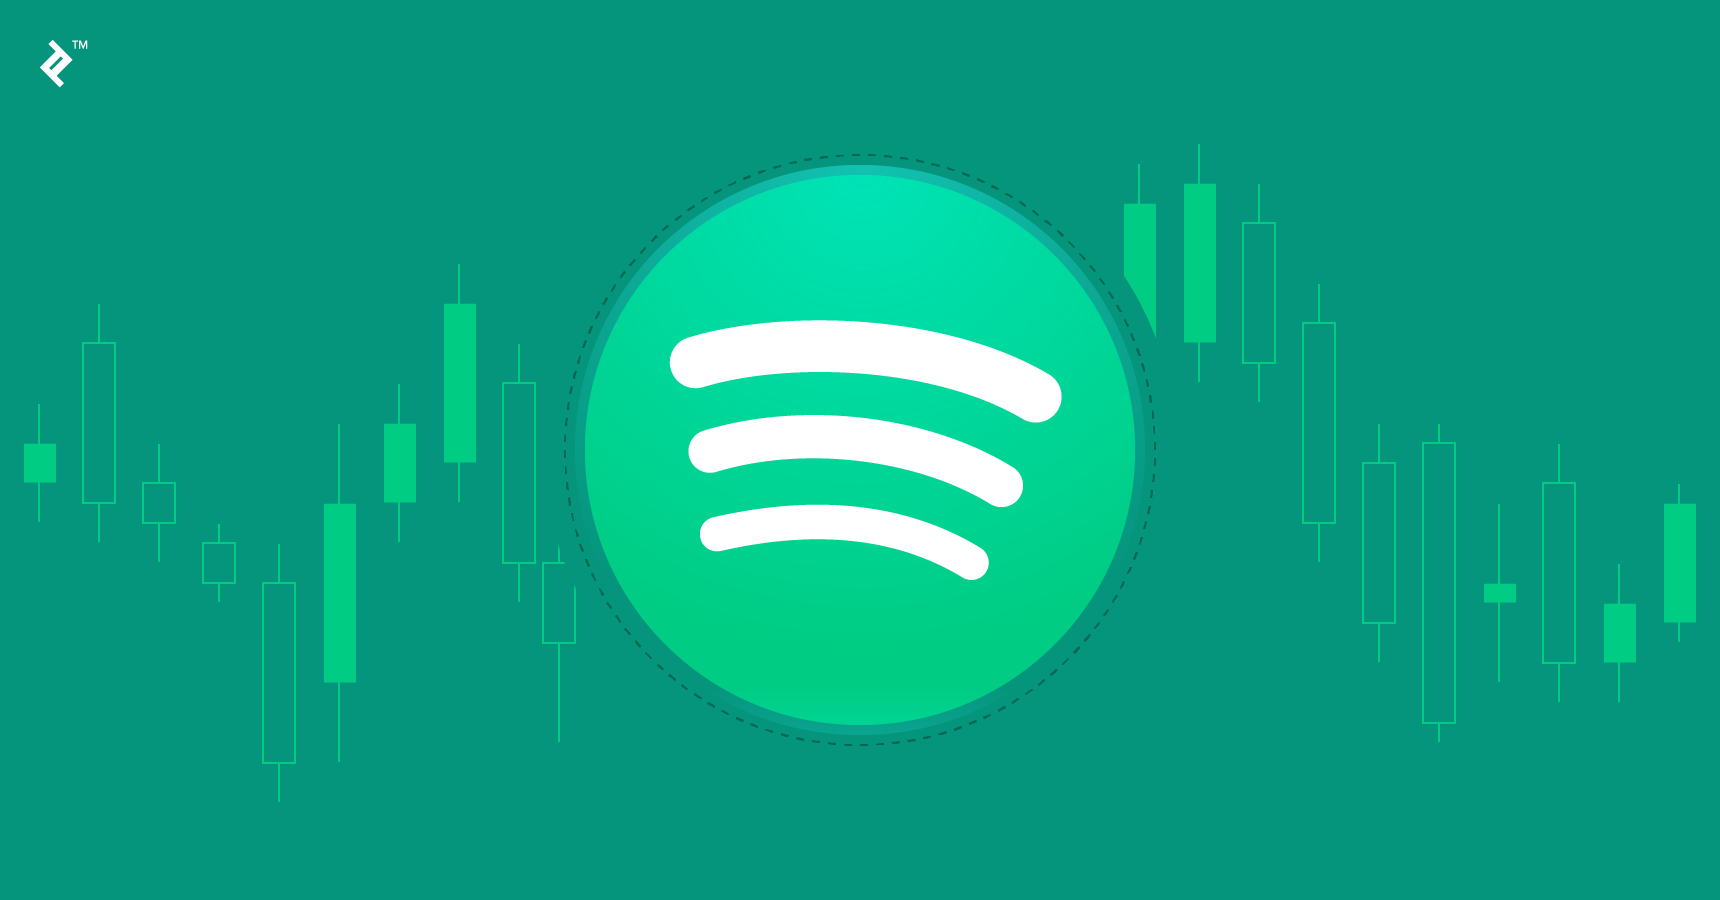 Will Spotify Stock Plunge or Soar? | Toptal